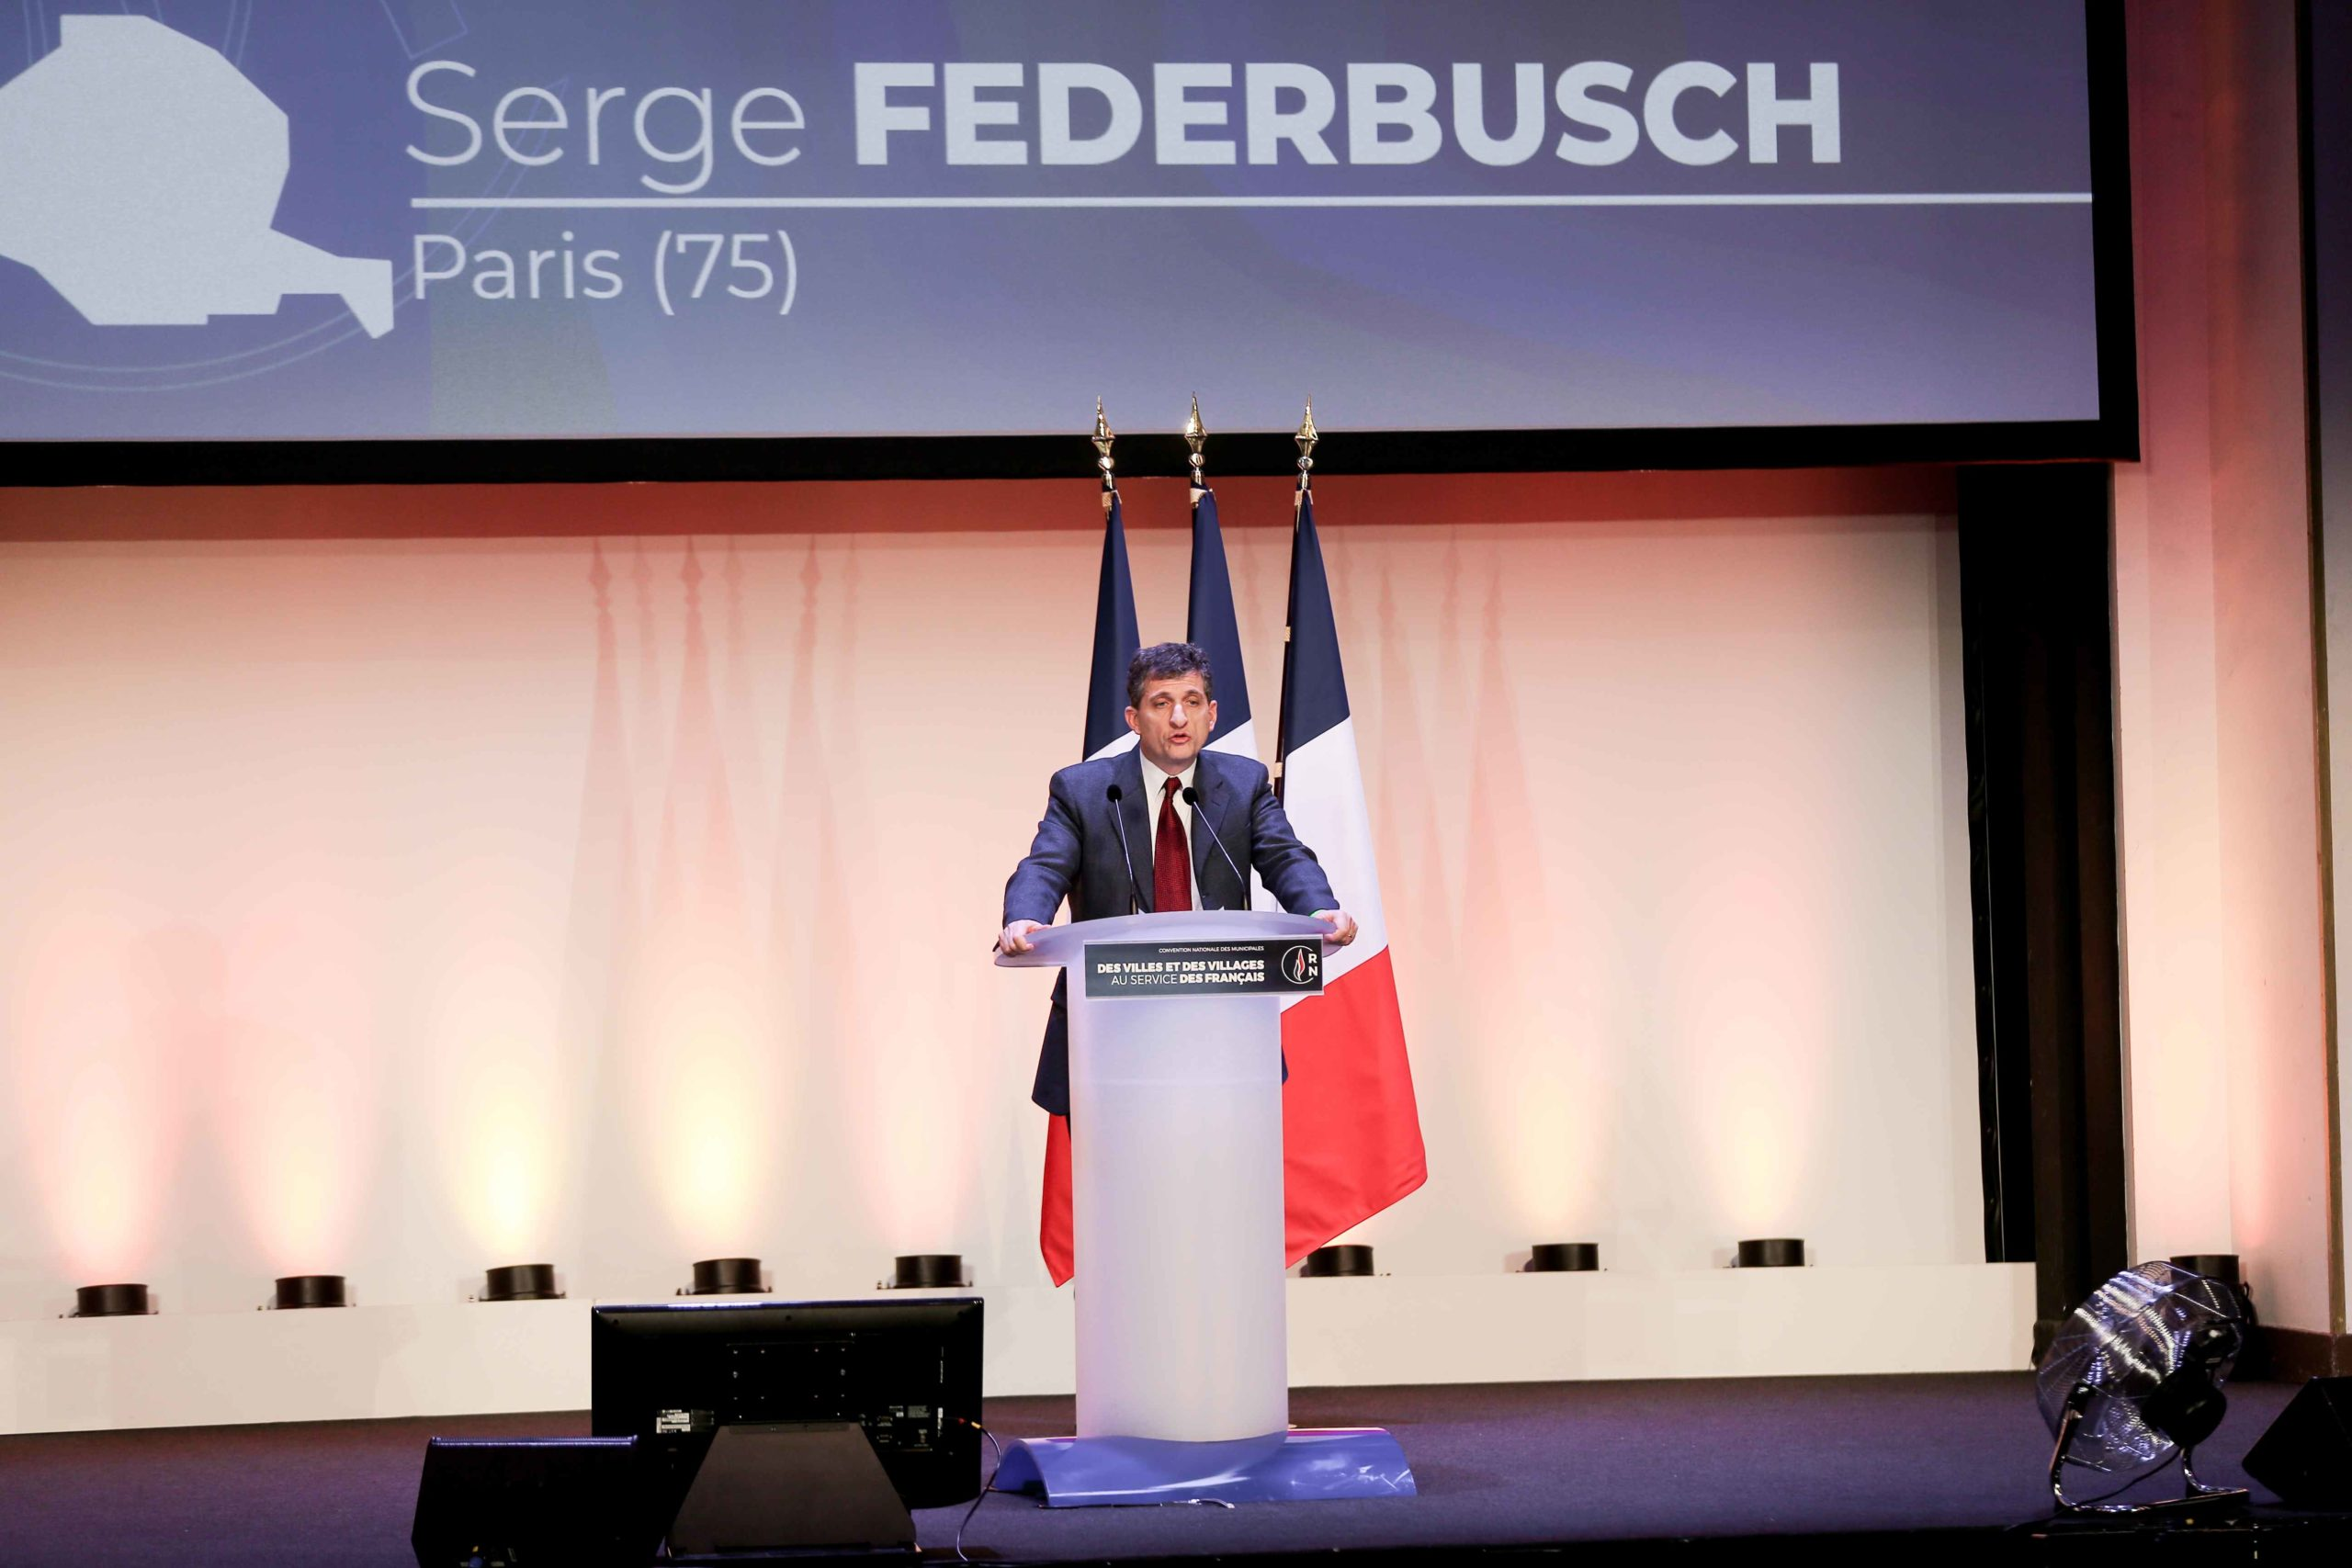 Serge Federbusch, the Rassemblement national (RN) candidate in the forthcoming mayoral election in Paris, speaks in Paris, on January 12, 2020, during a meeting to launch the RN campaign candidates for the next municipal elections.  The 2020 French municip